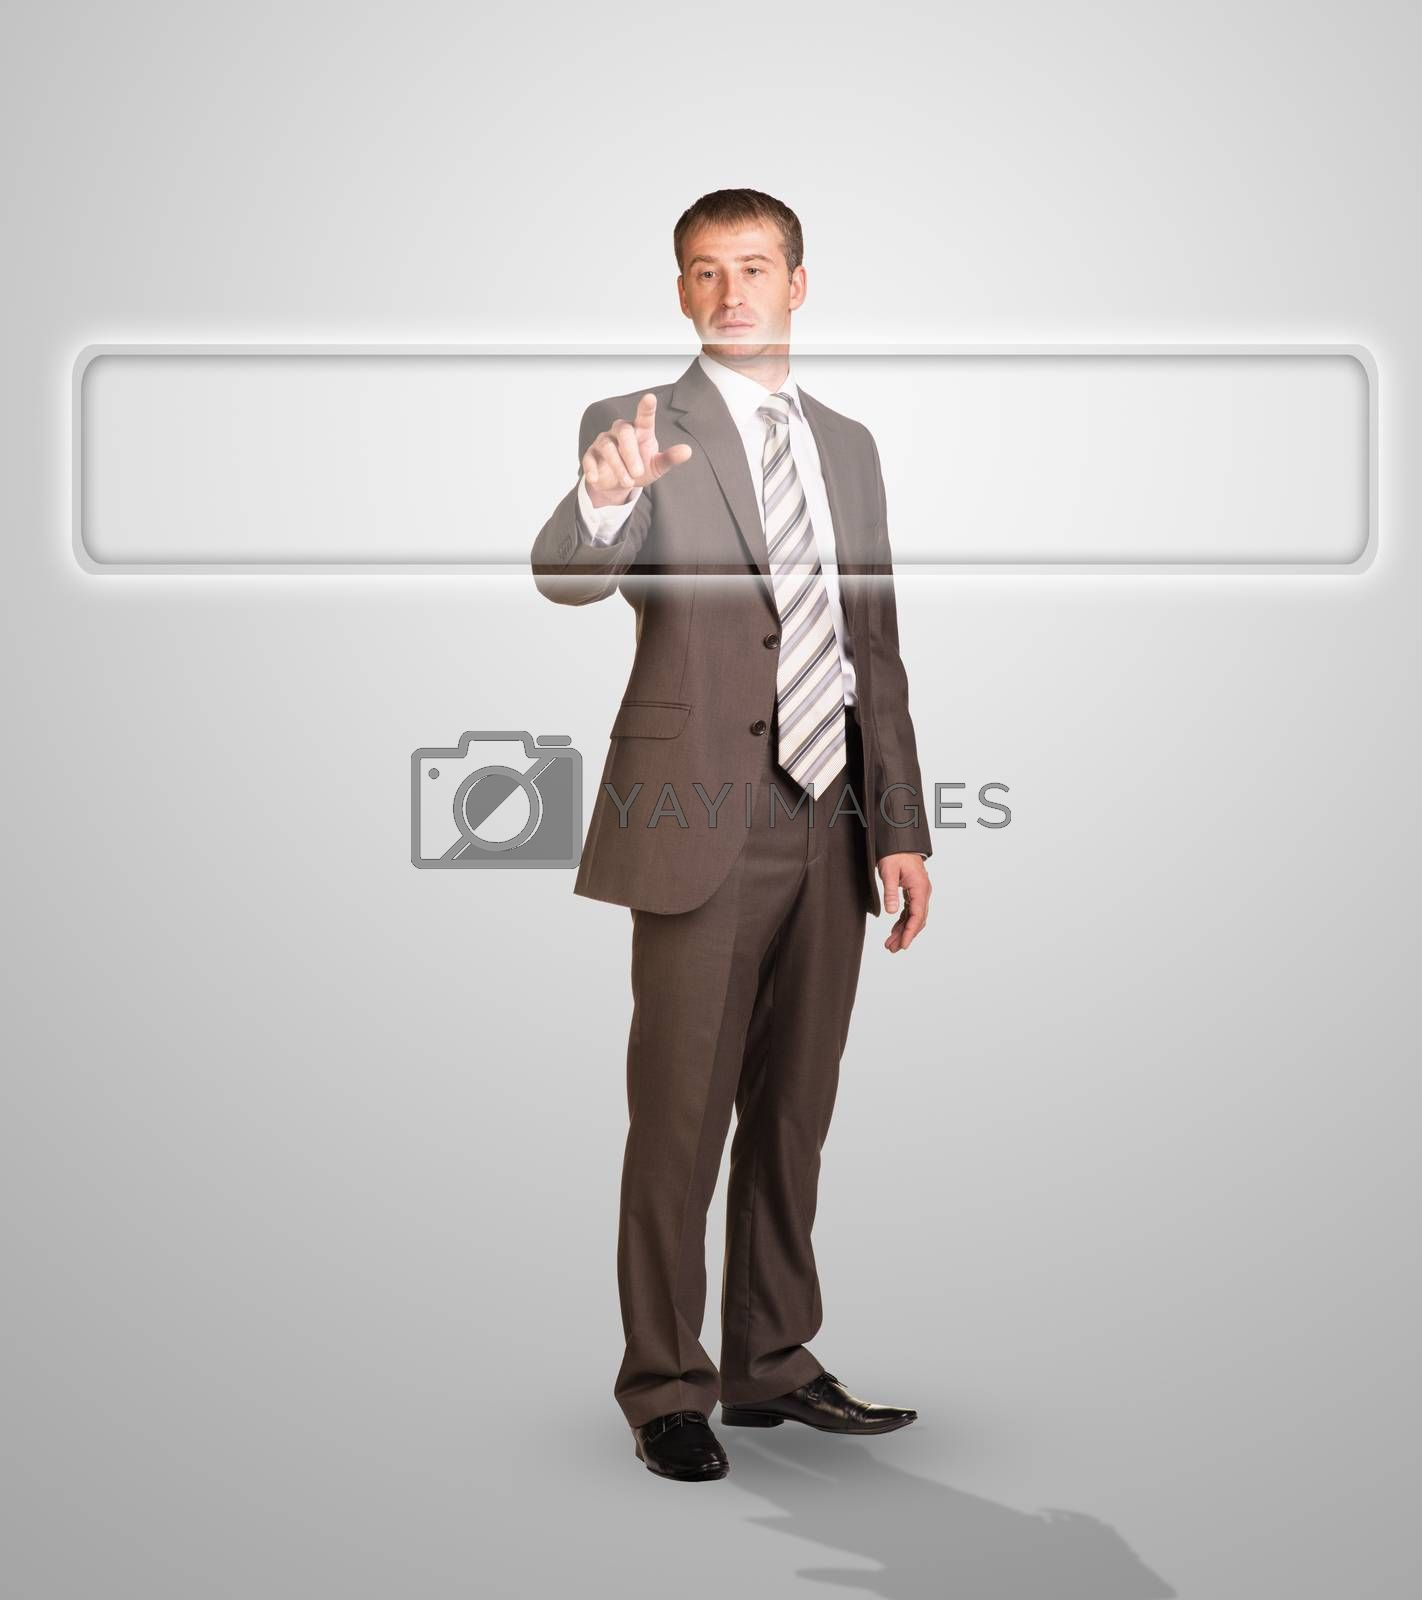 Businessman standing and pressing on holographic screen on abstract grey background, close-up view